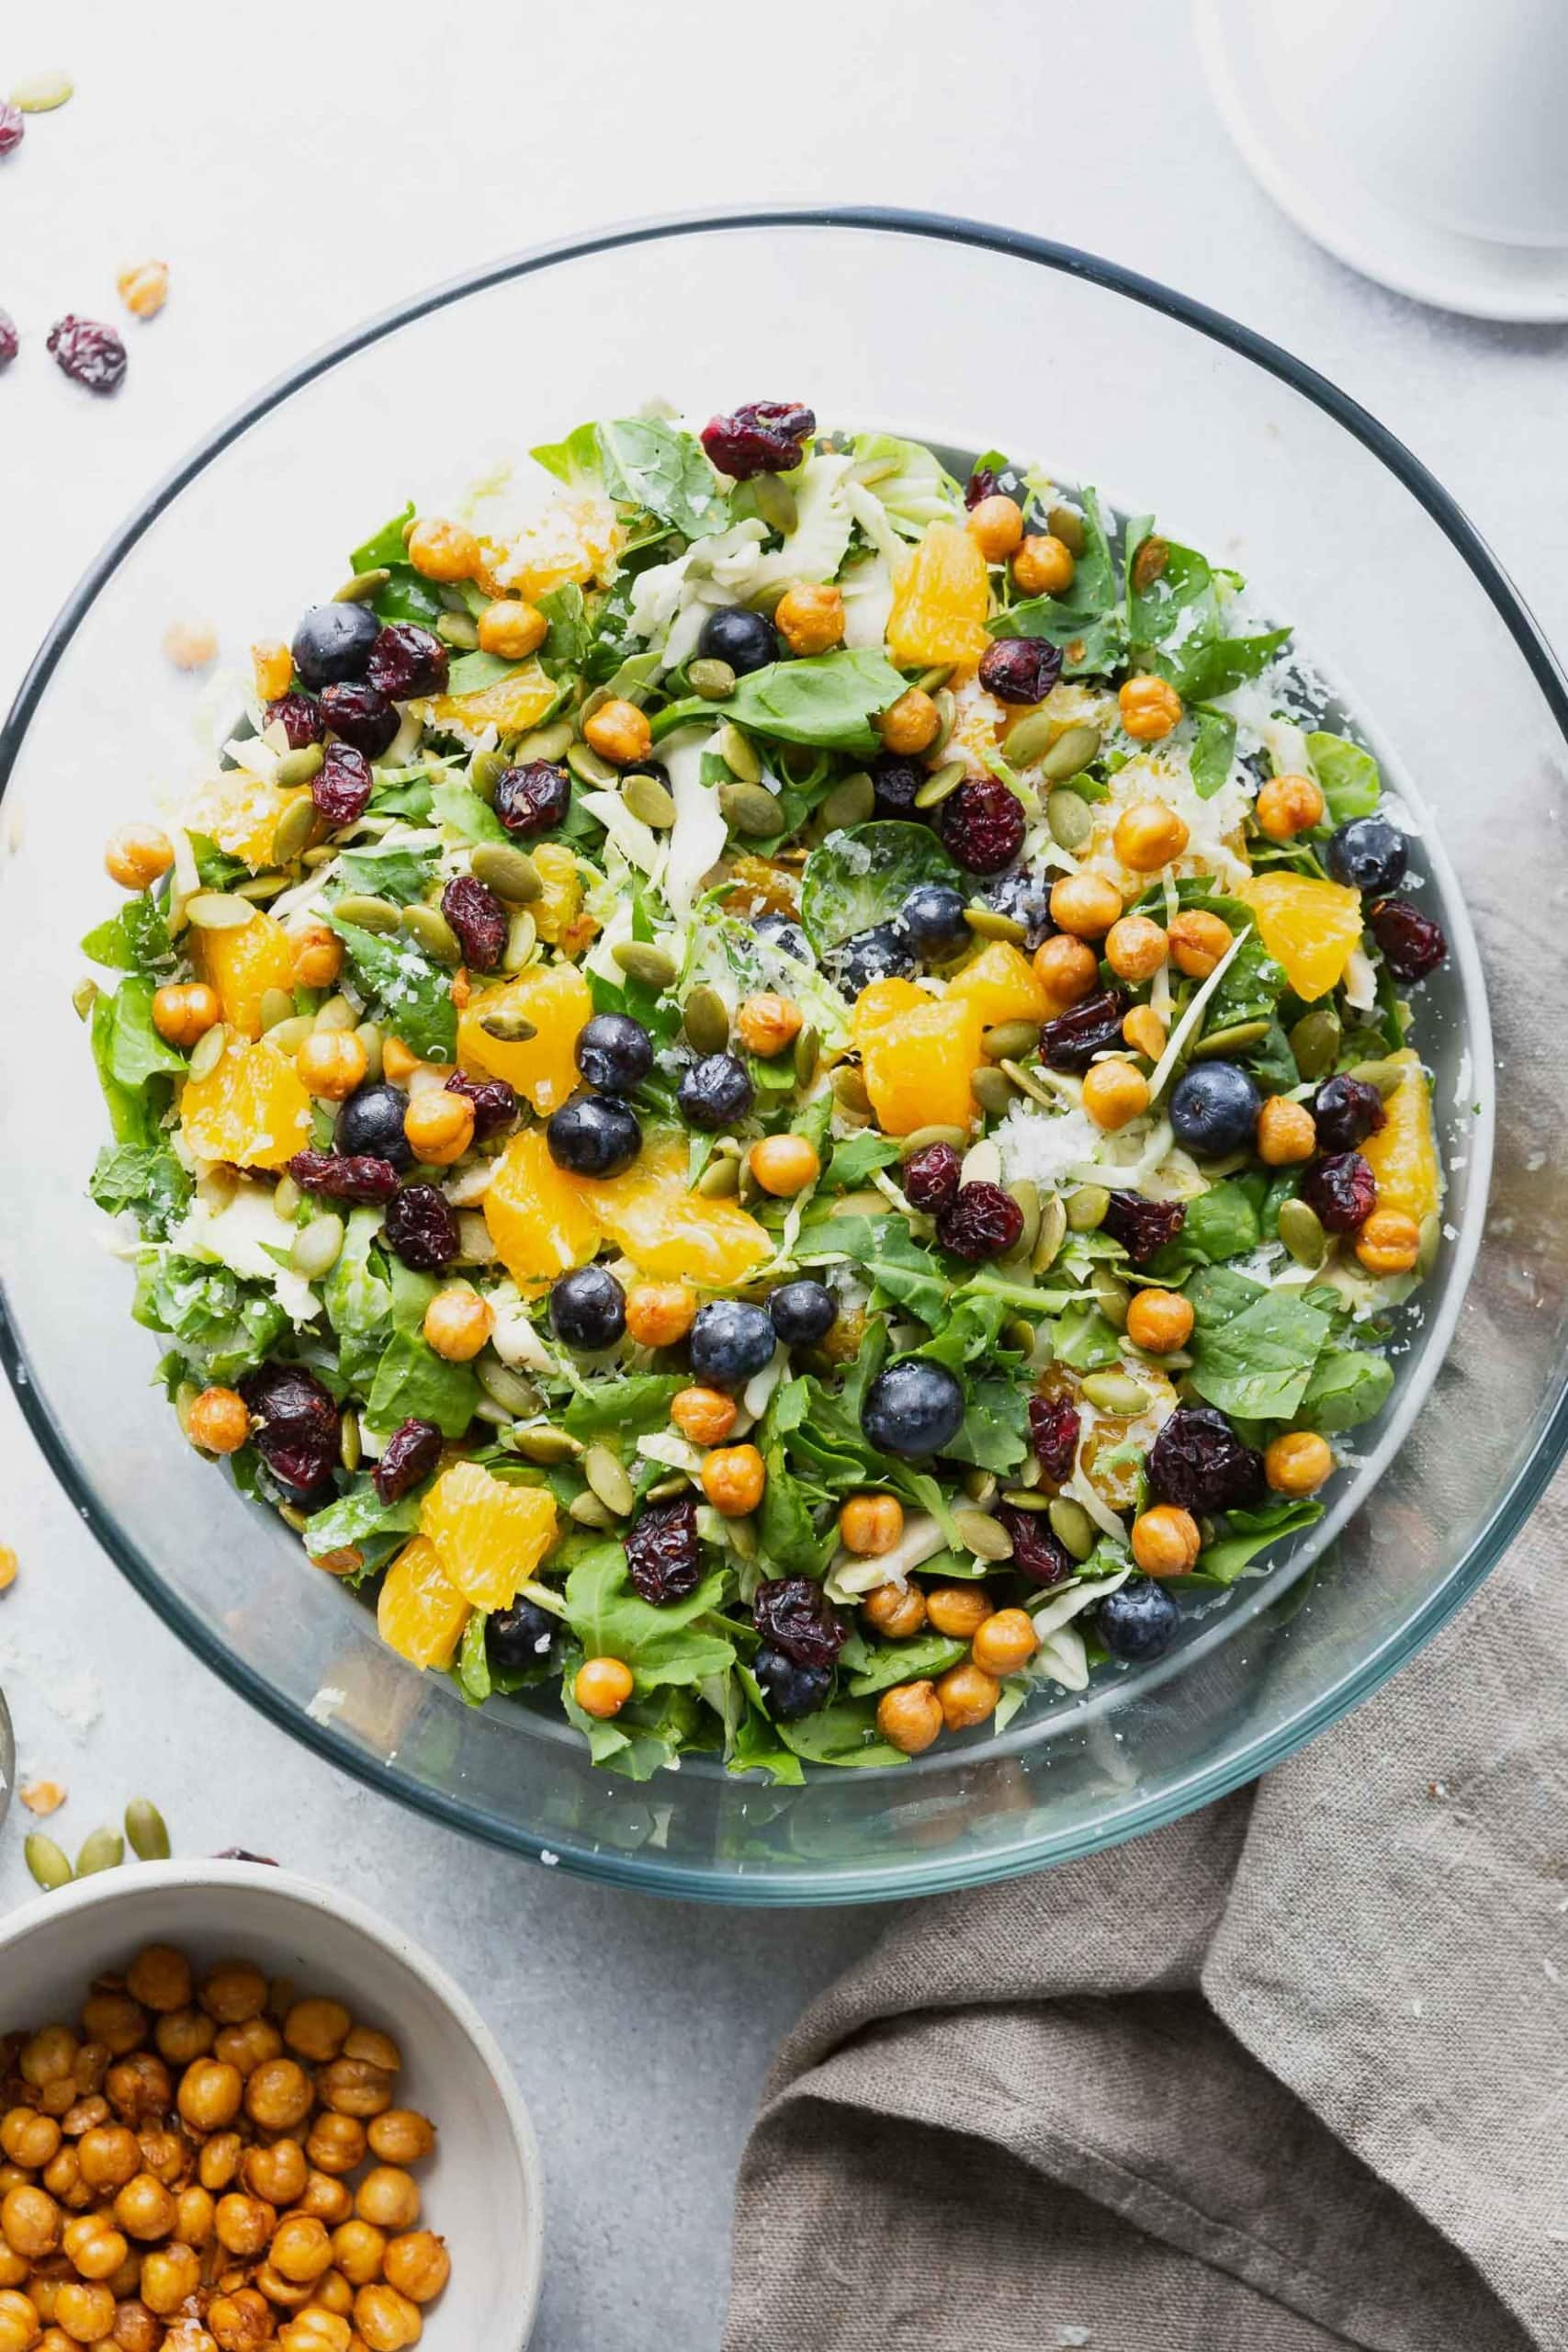 a photo of a large serving bowl full of a salad topped with mandarin oranges, and manchego cheese.